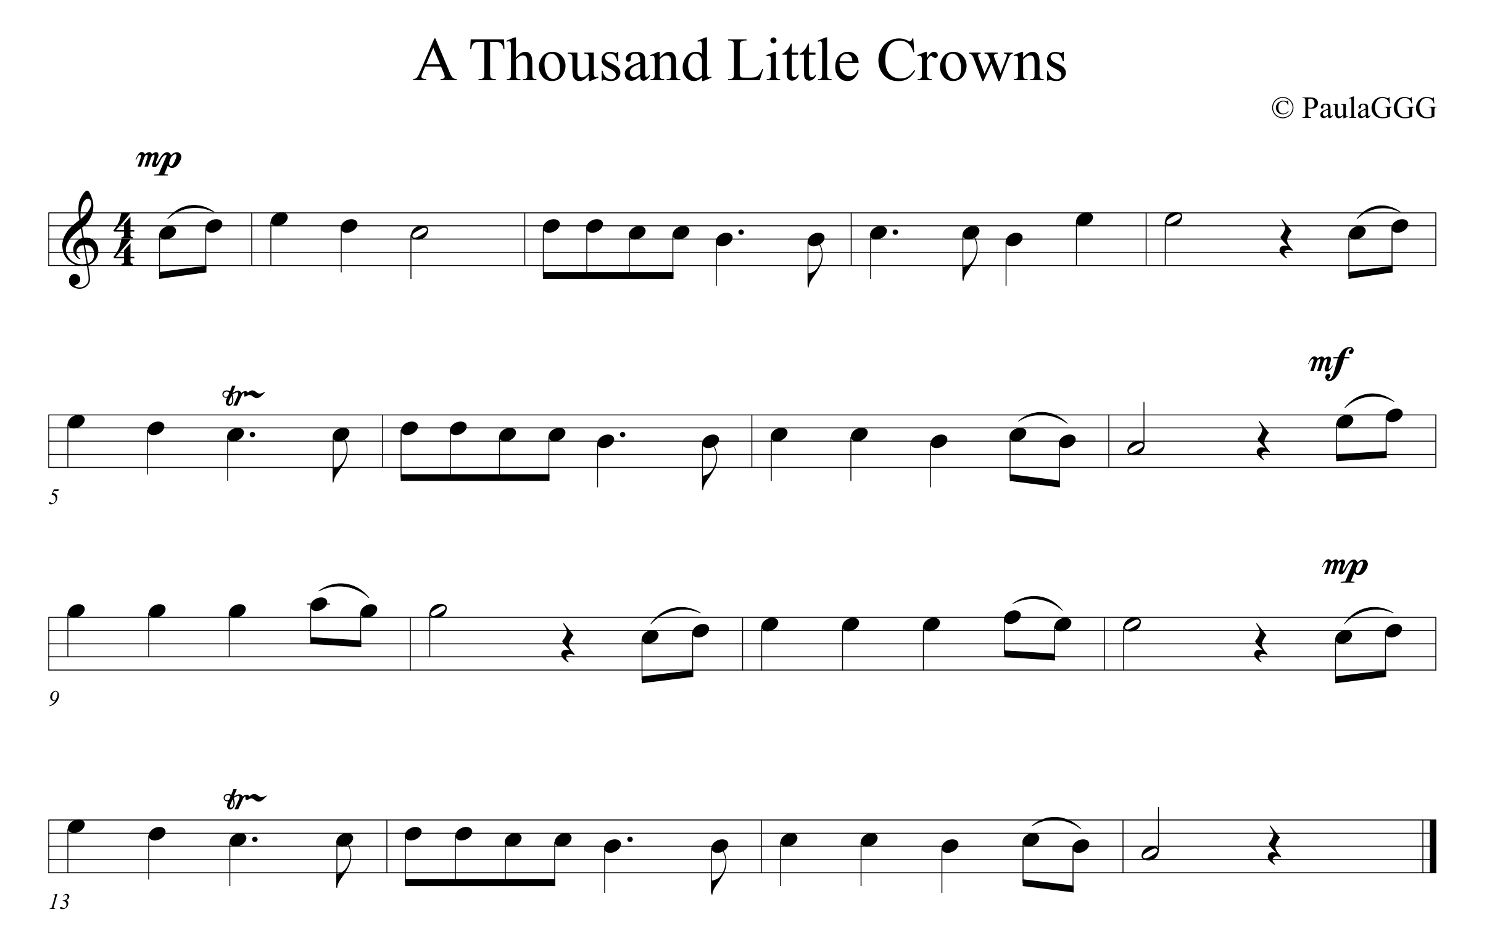 A Thousand Little Crowns - Sheet Music picture